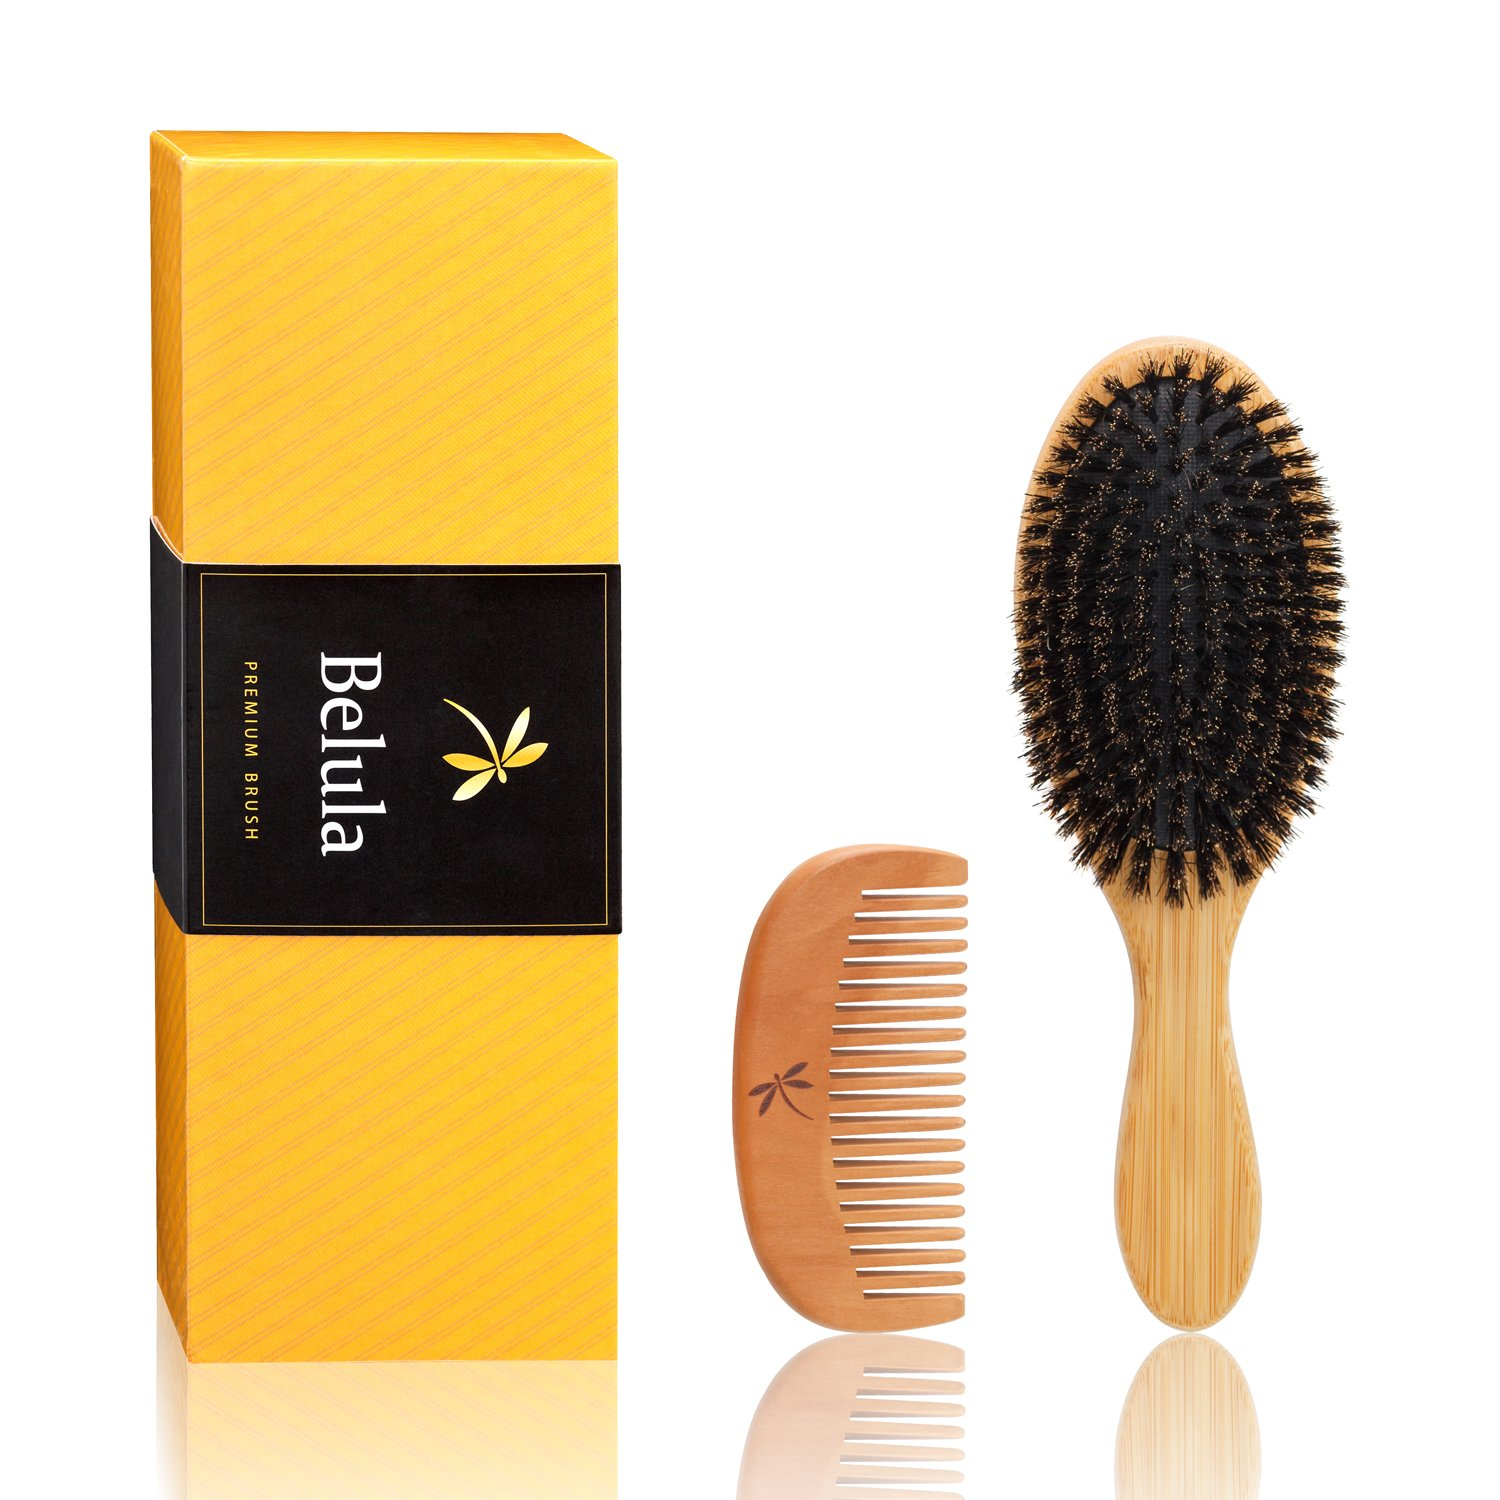 Natural Boar Bristle Hair Brush Set for Women, Men and Kids With Thin, Normal And Fine Hair. Restore Shine And Texture To Your Hair. Wooden Comb, Travel Bag and Spa Headband Included!